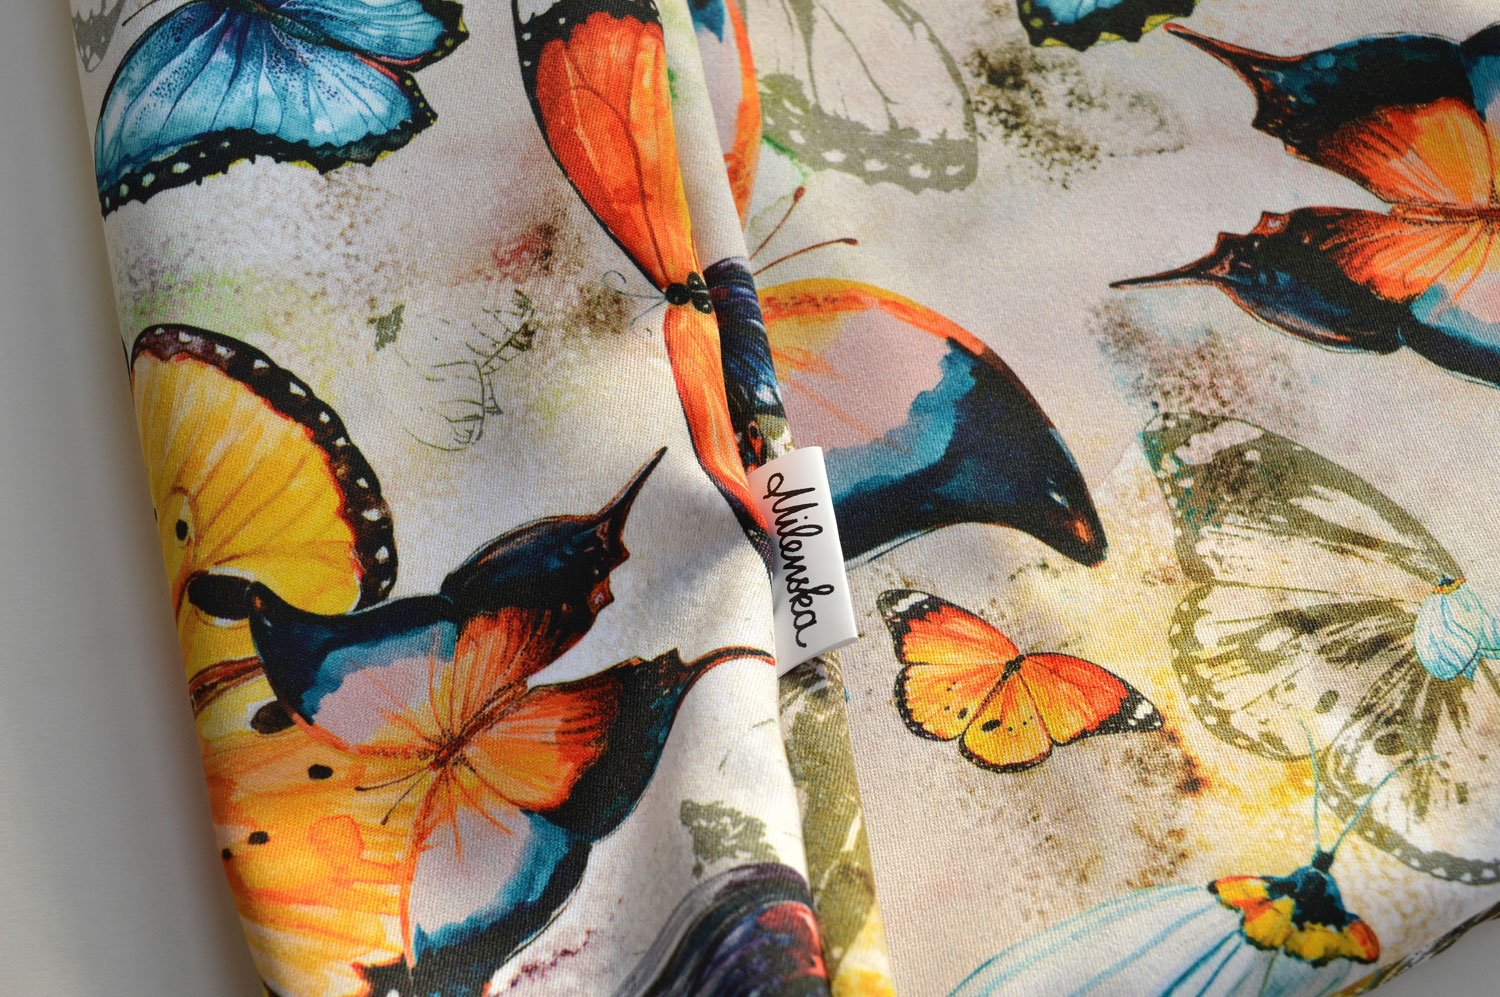 Butterfly fabric design by Milena Gaytandzhieva Artist